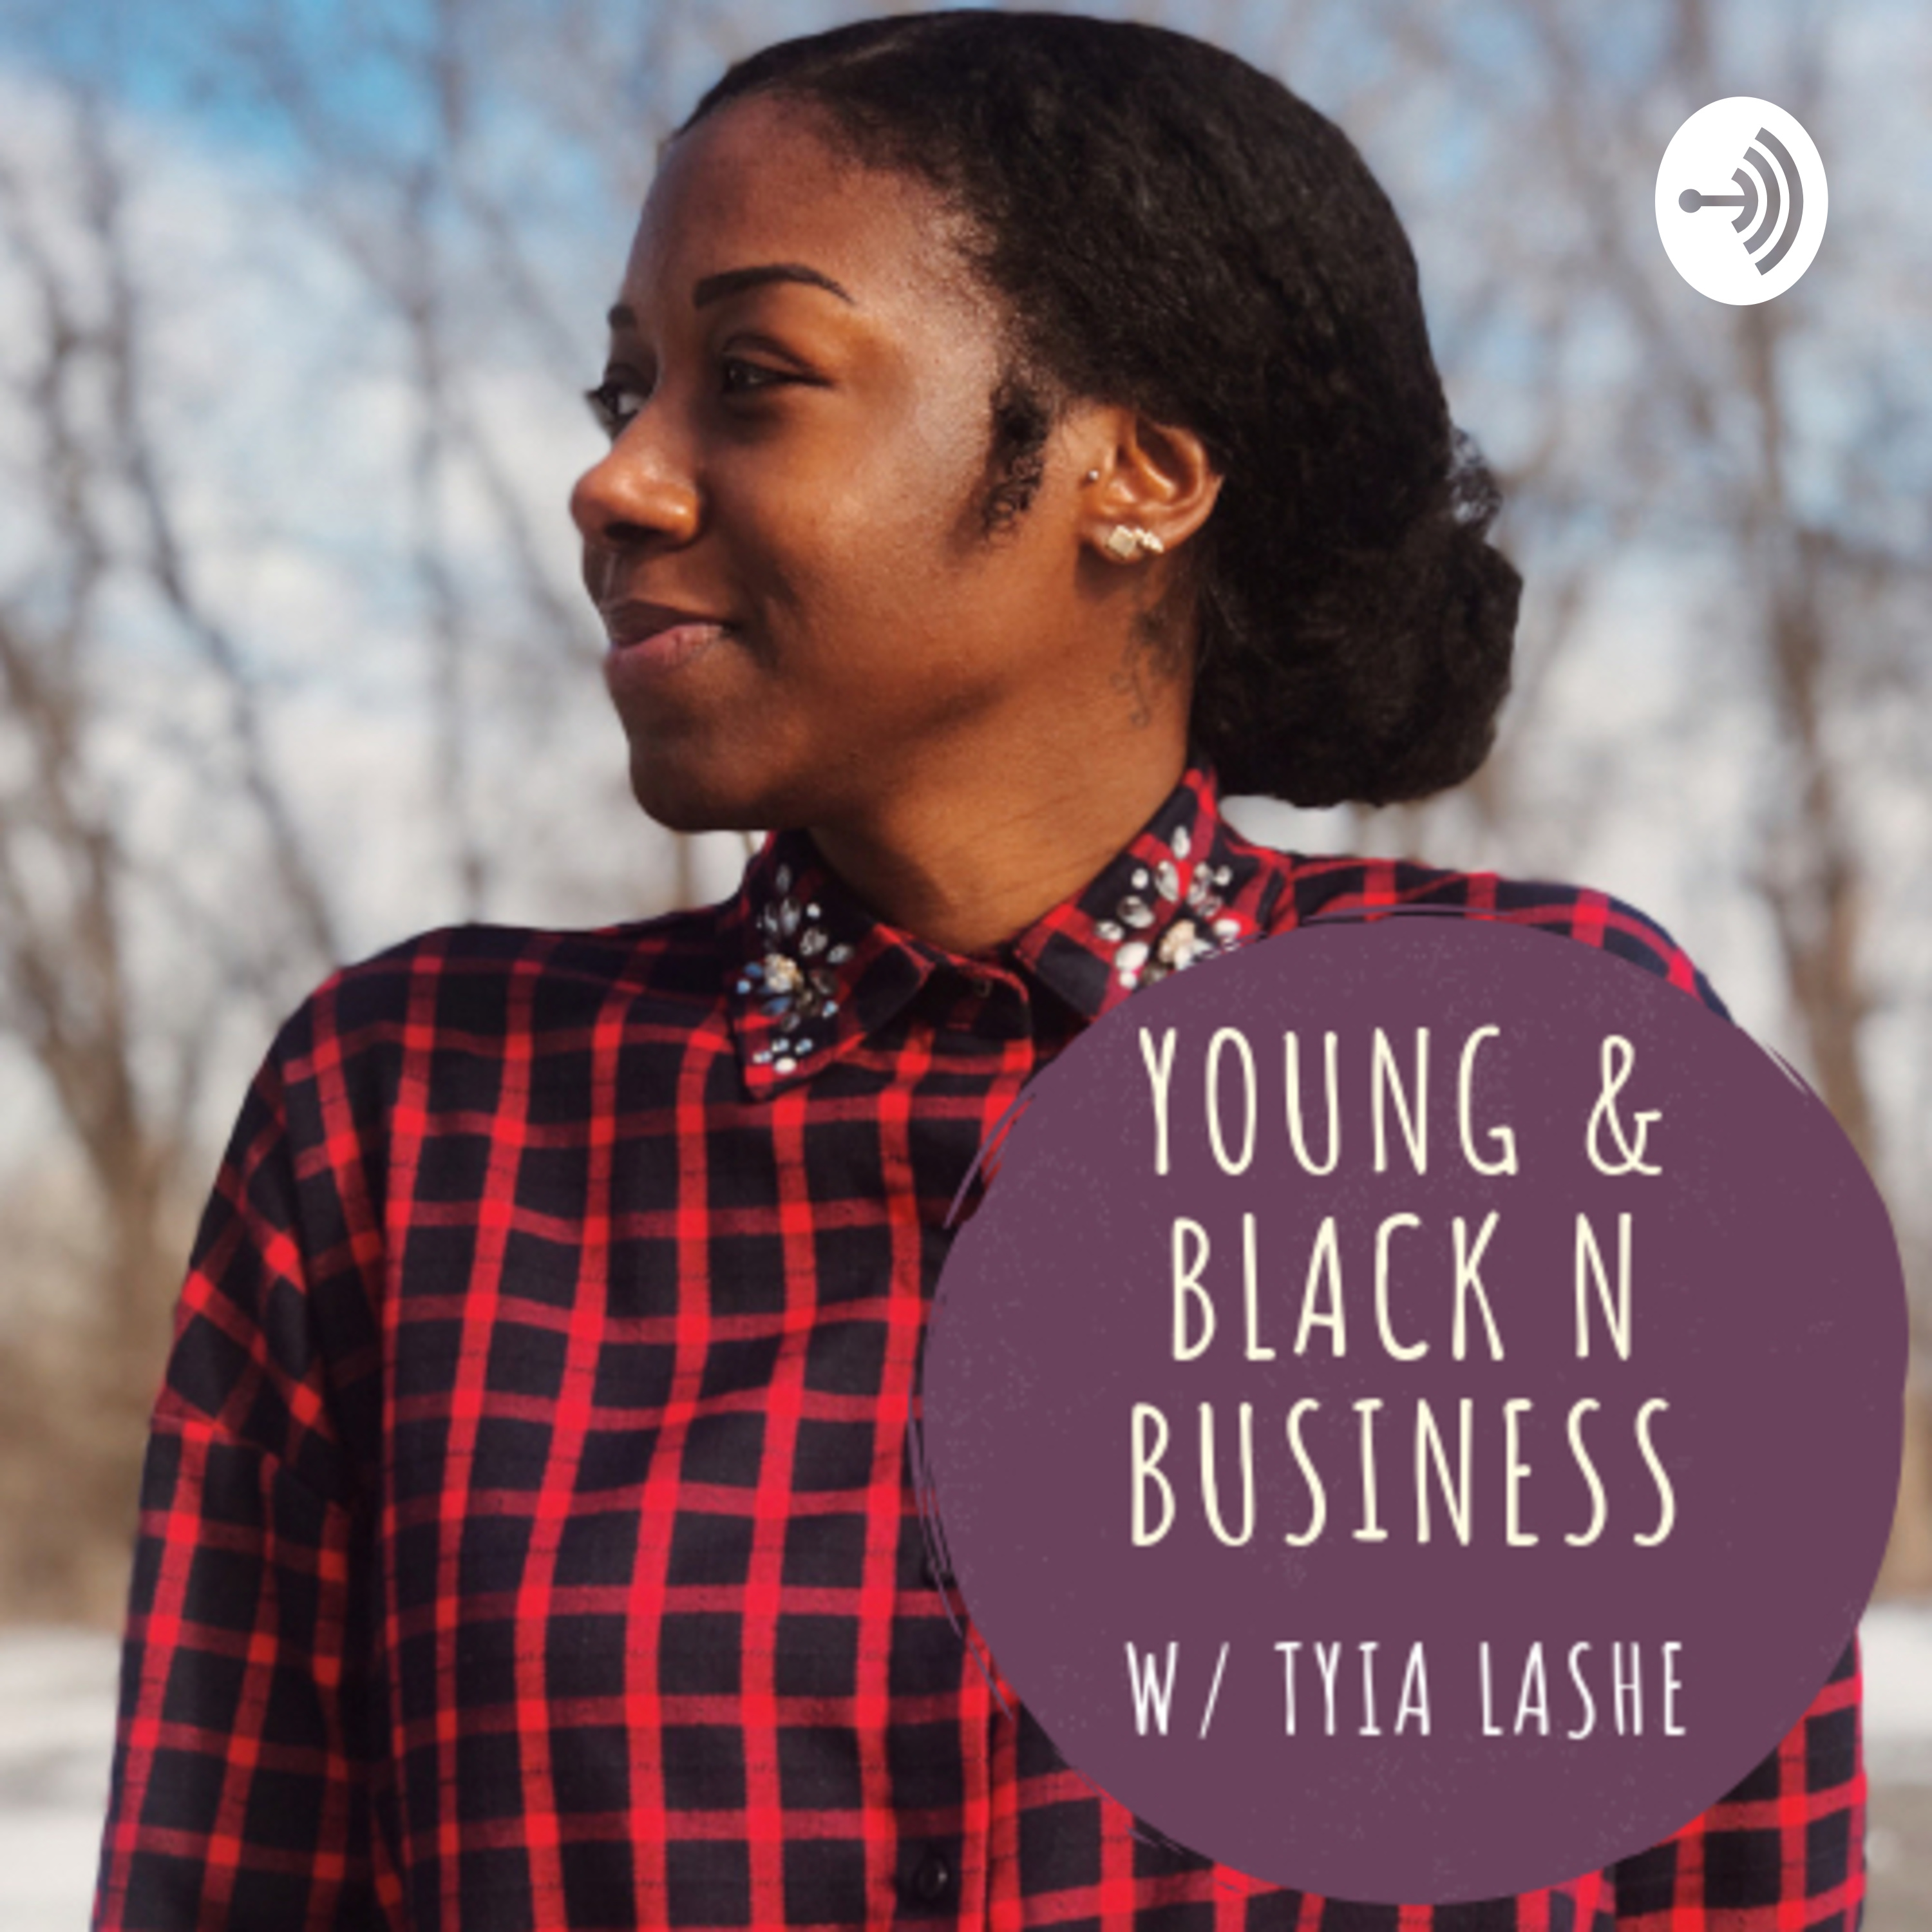 Young & Black N Business